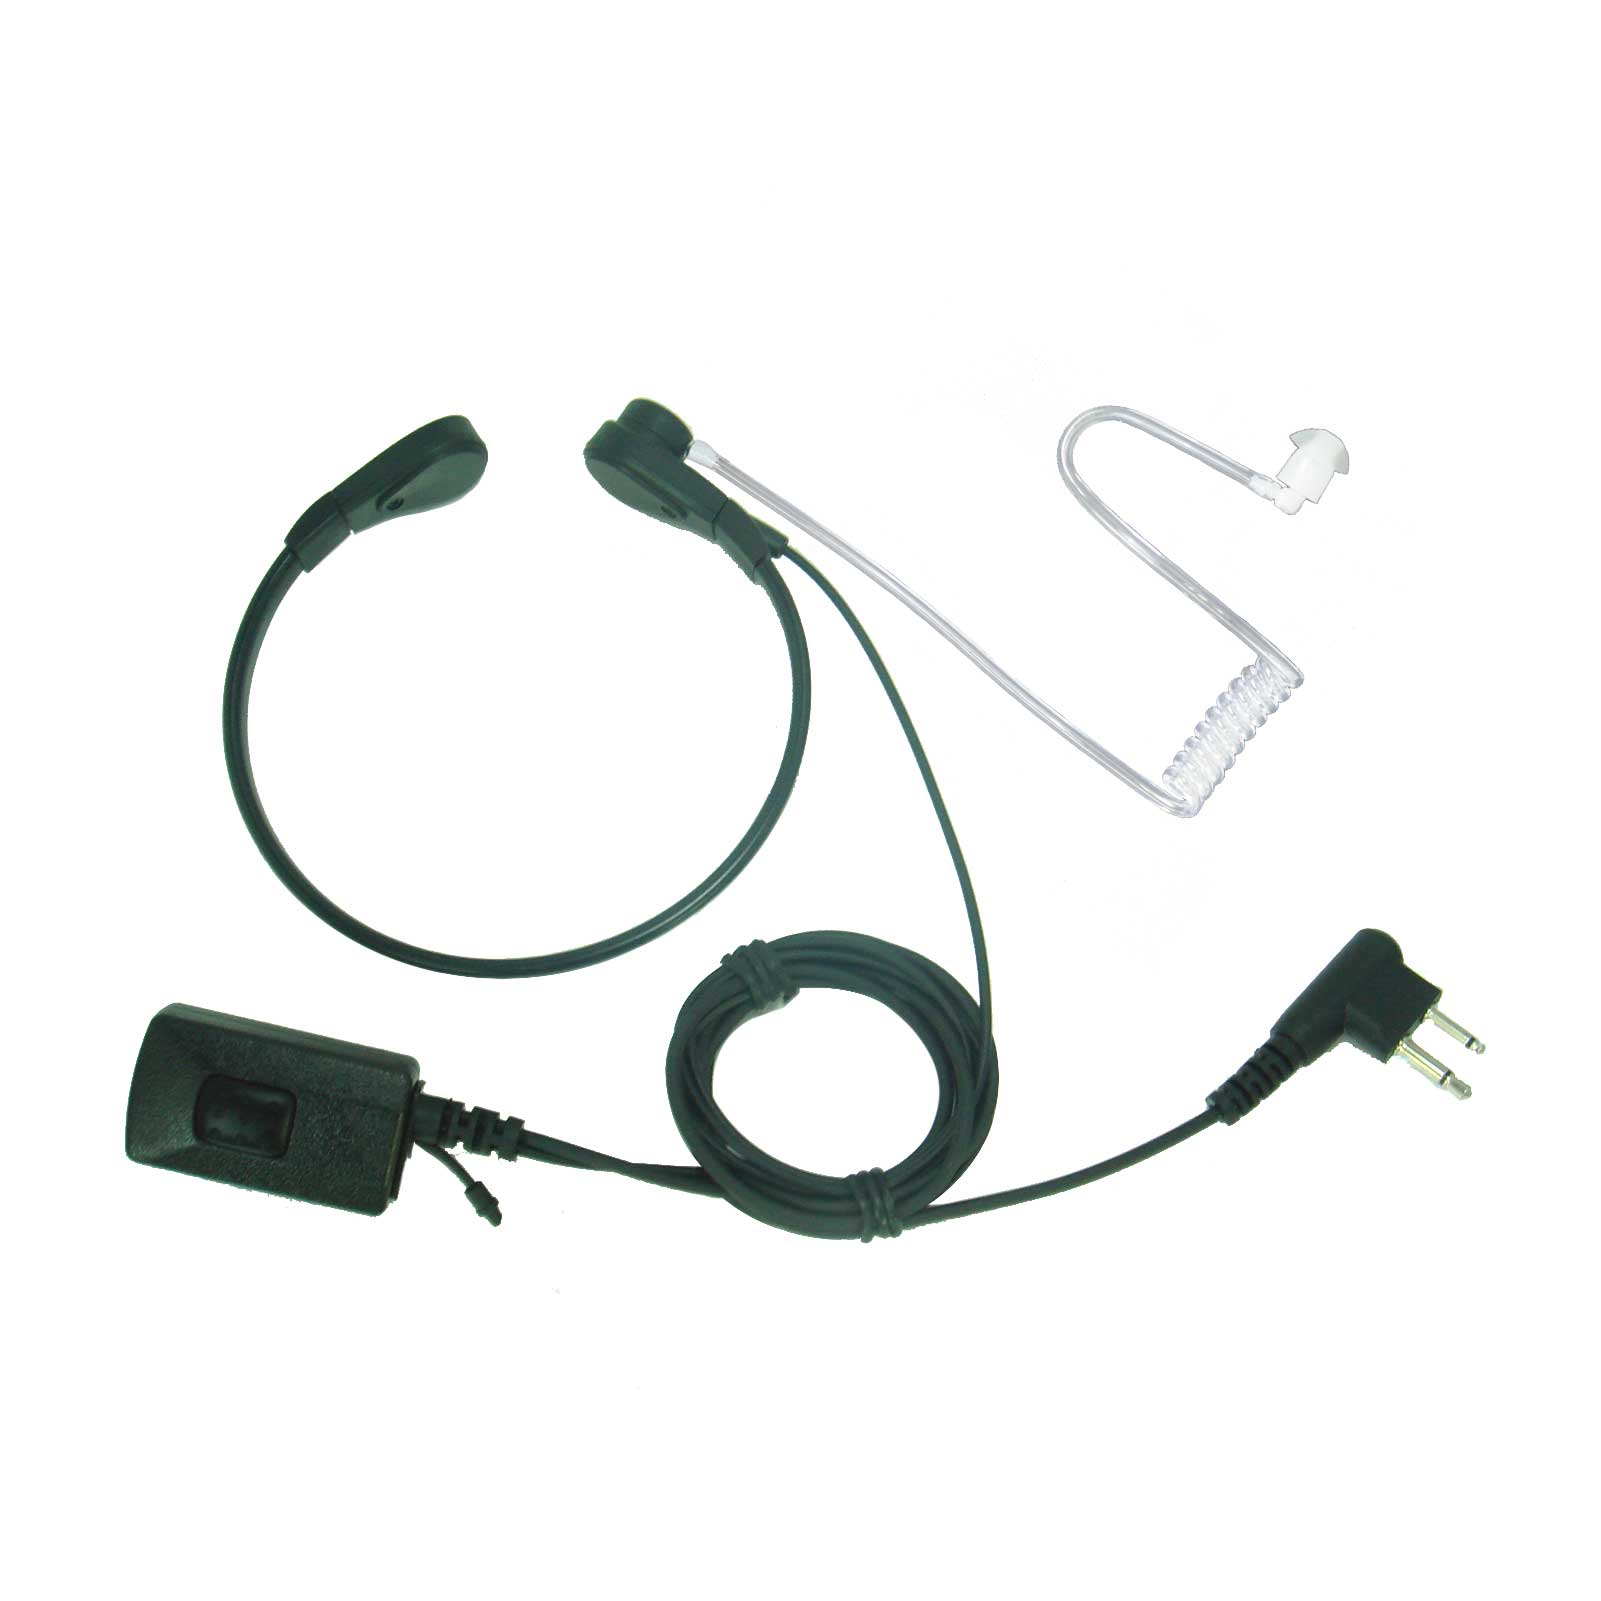 Throat microphone & earpiece with acoustic tube & Kenwood-type two-pin plug